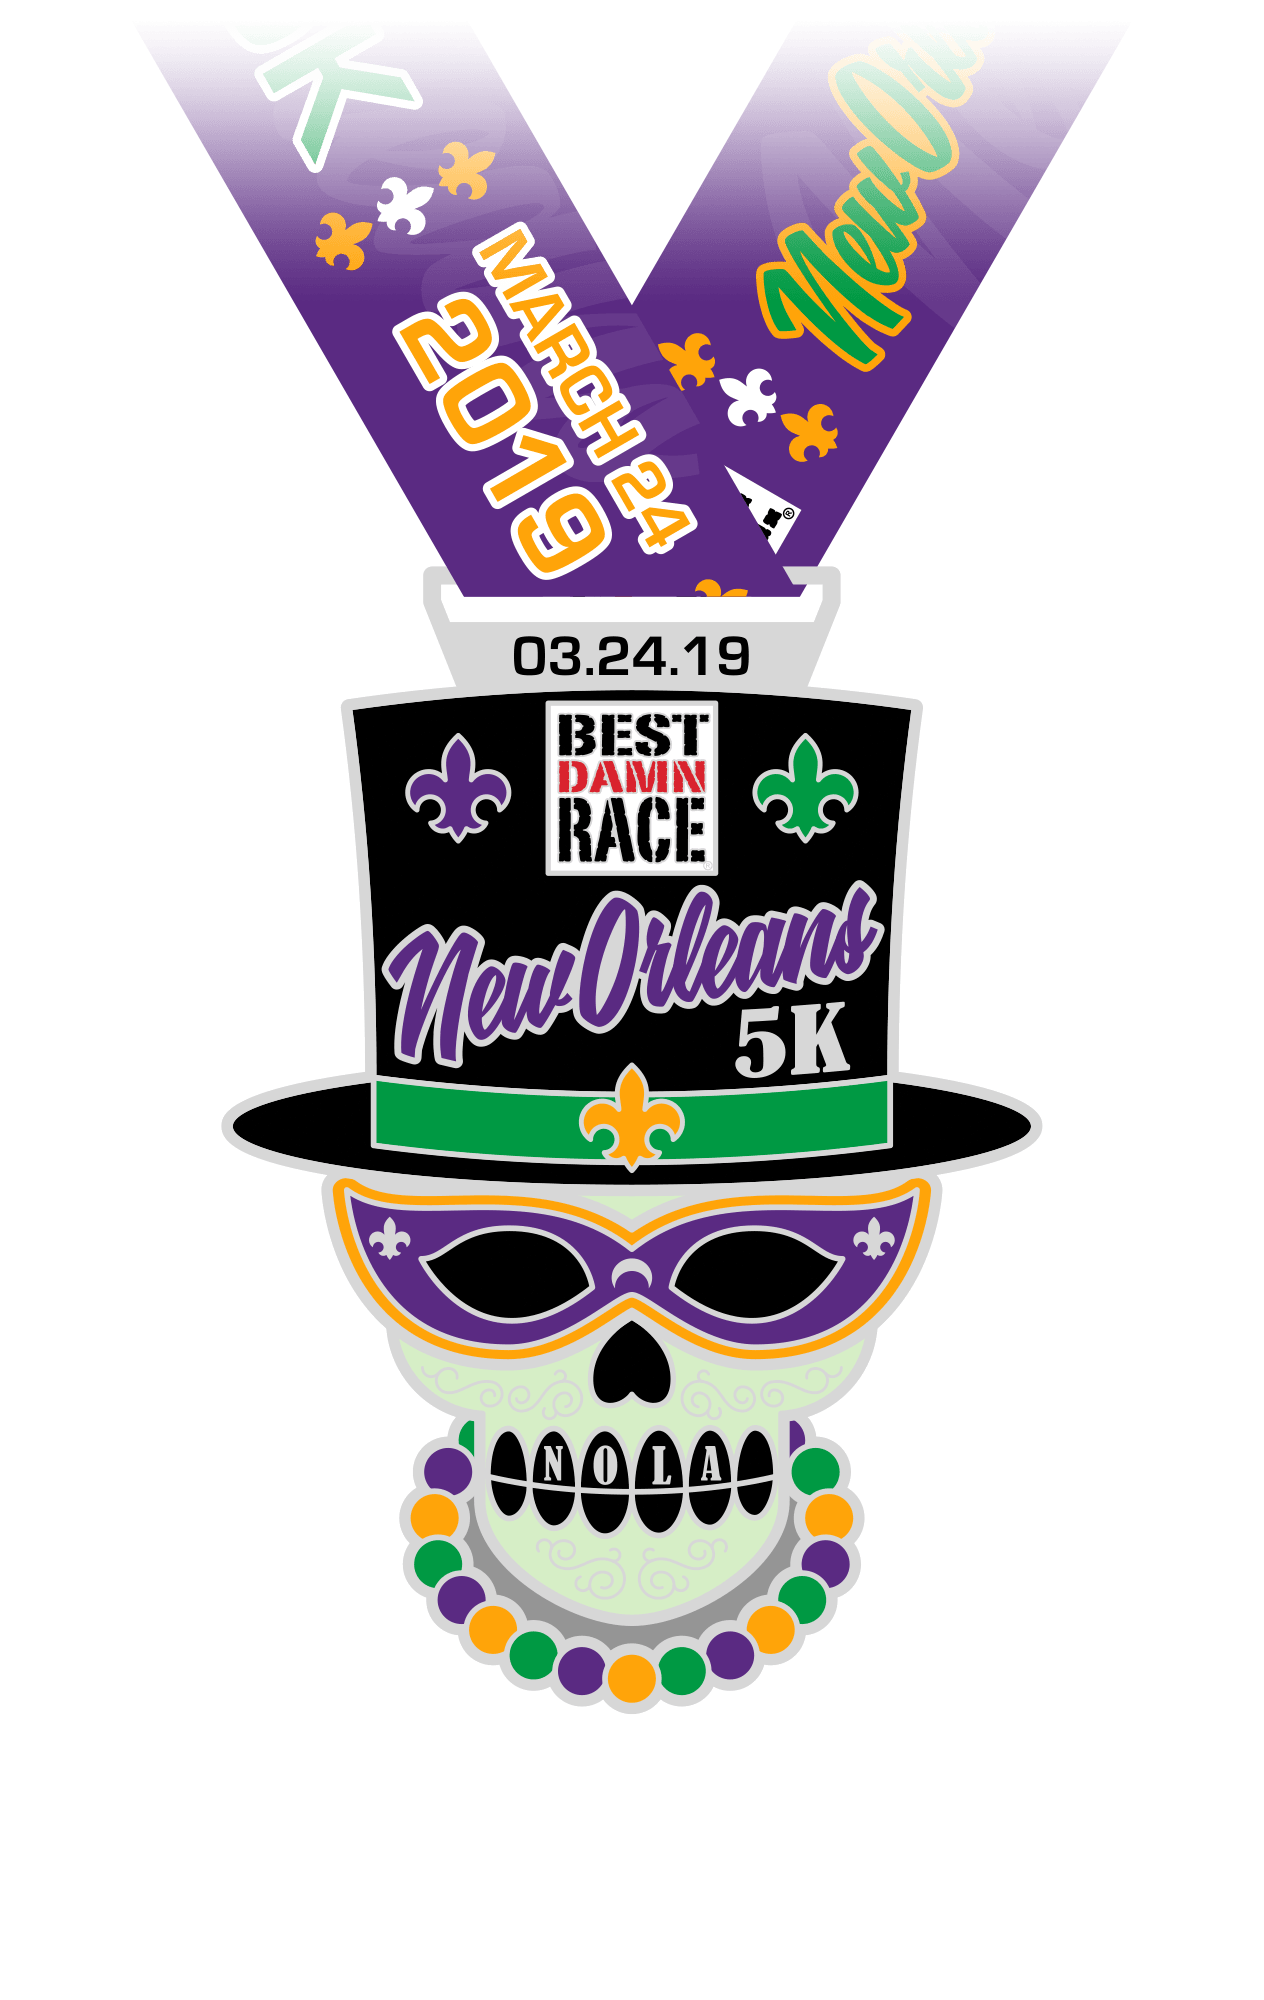 5K Medal - New Orleans 2018 - Best Damn Race